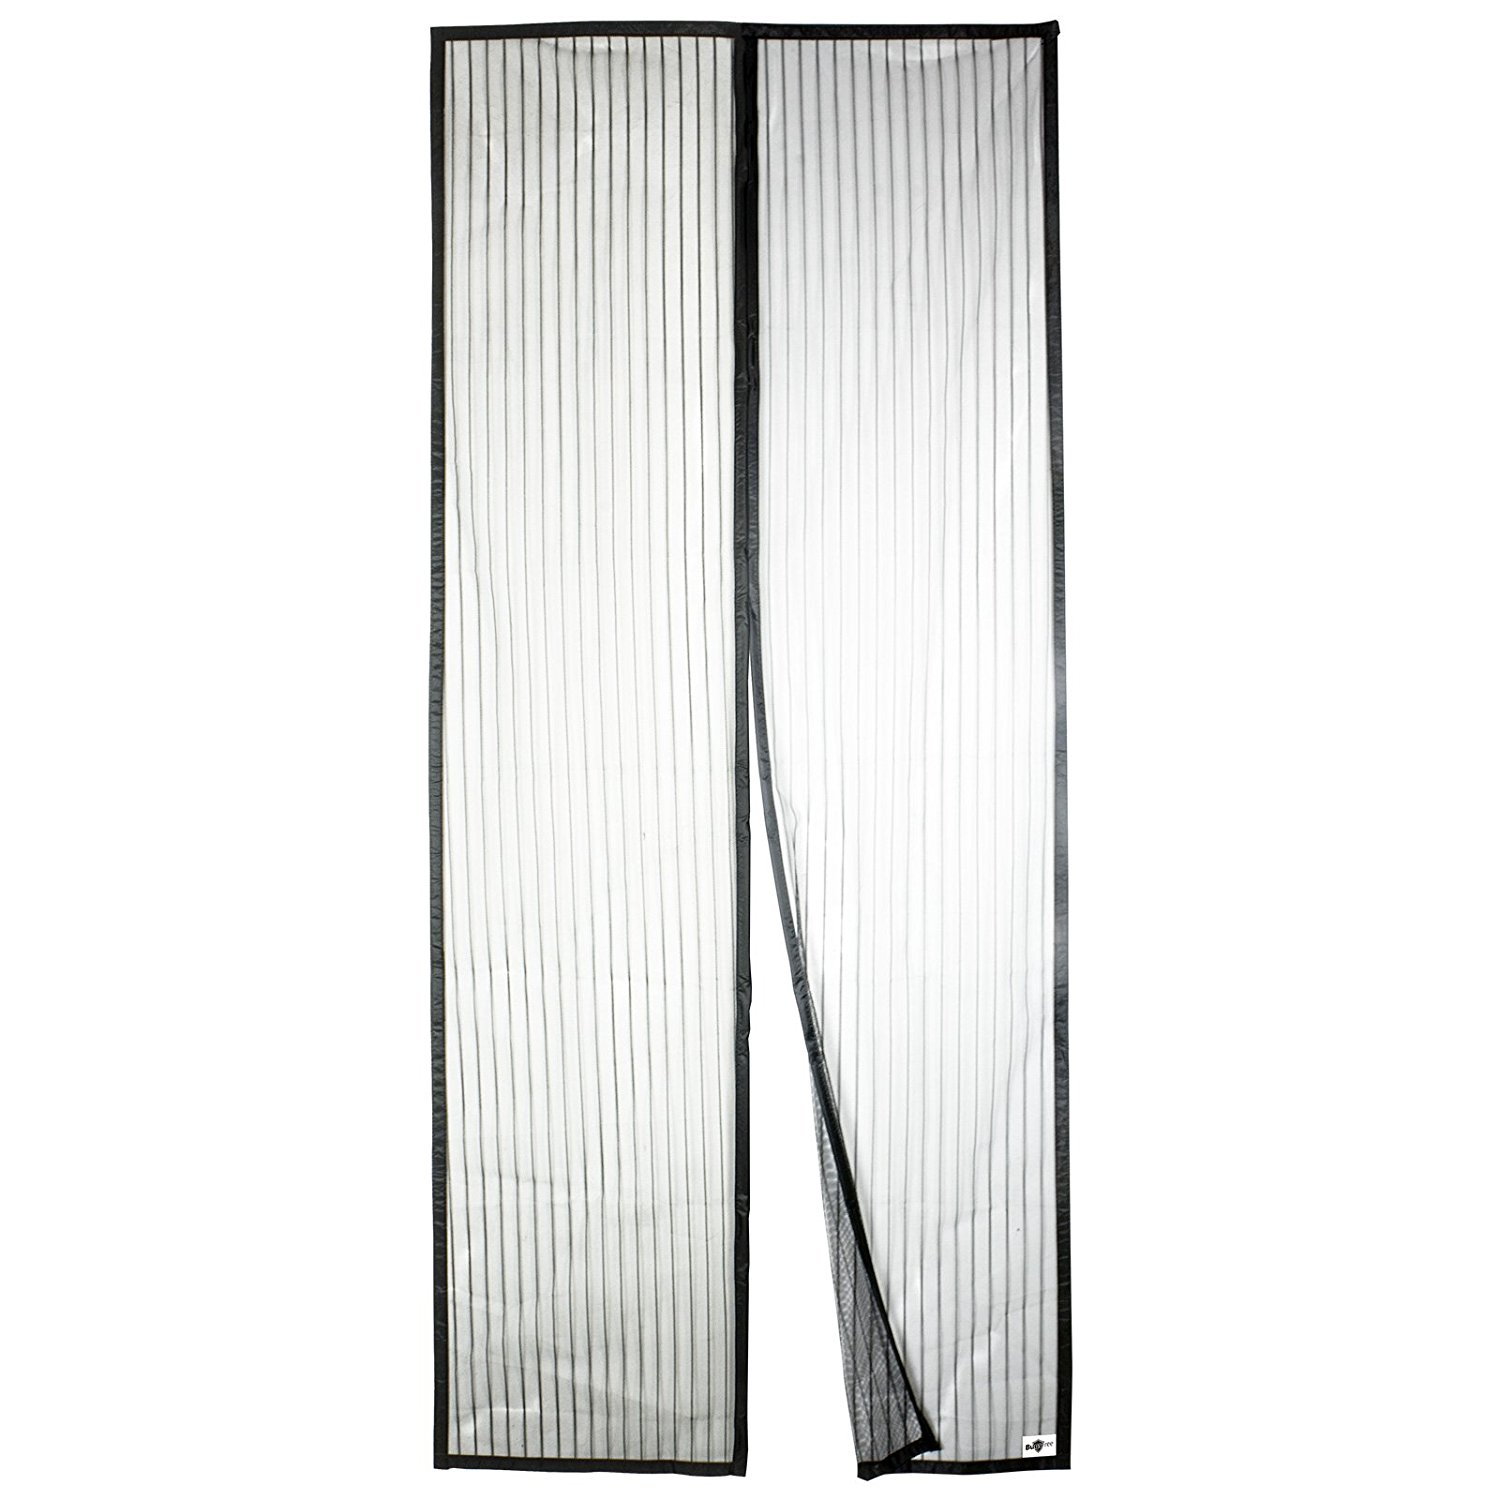 Apalus Magnetic Screen Door Keep Fresh Air in /& Bugs Out 92x202CM, Black Suitable for Home Campers RV Super Fine Mesh Fly Curtain 26 Magnets from Top-to-Bottom Seal Snaps Shuts Automatically